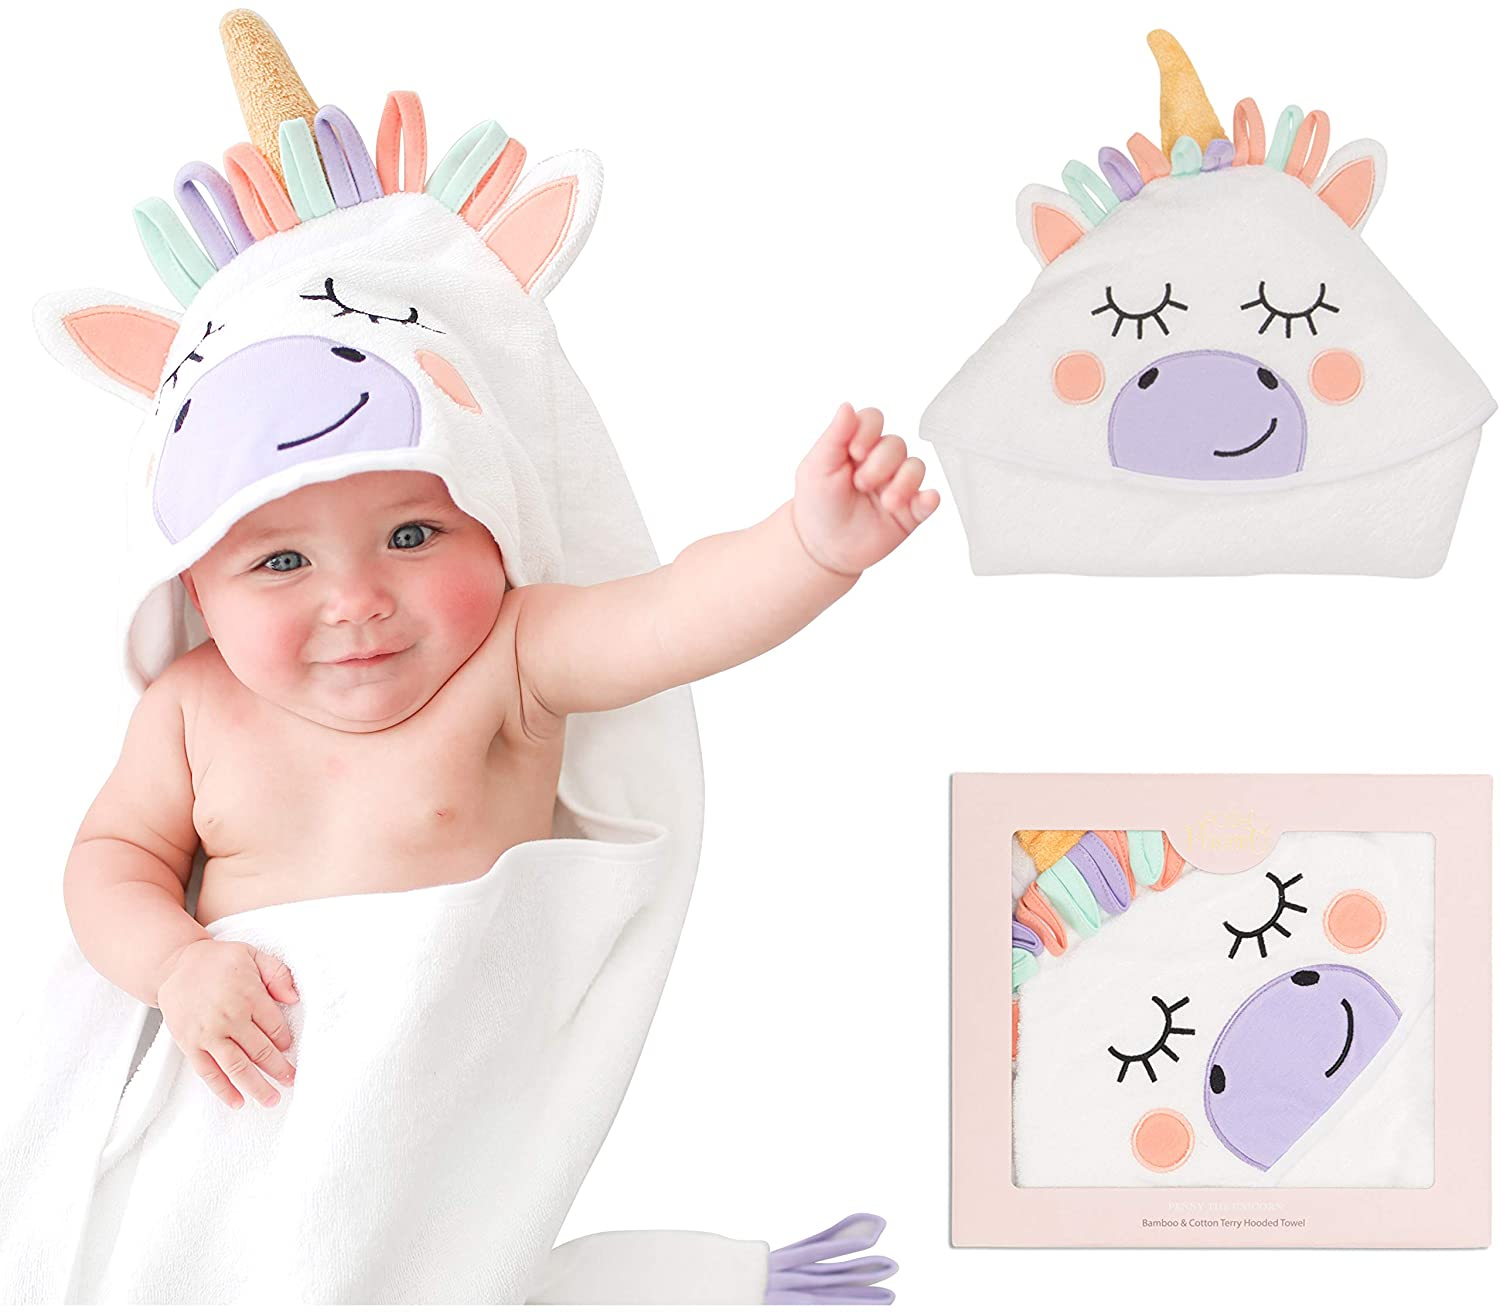 Posh Peanut Baby Hooded Towel – Highly Absorbent Cotton Infant Towel for The House, Beach, Pool – Super Soft Newborn Drying Bath Towel – Great Idea (Unicorn)